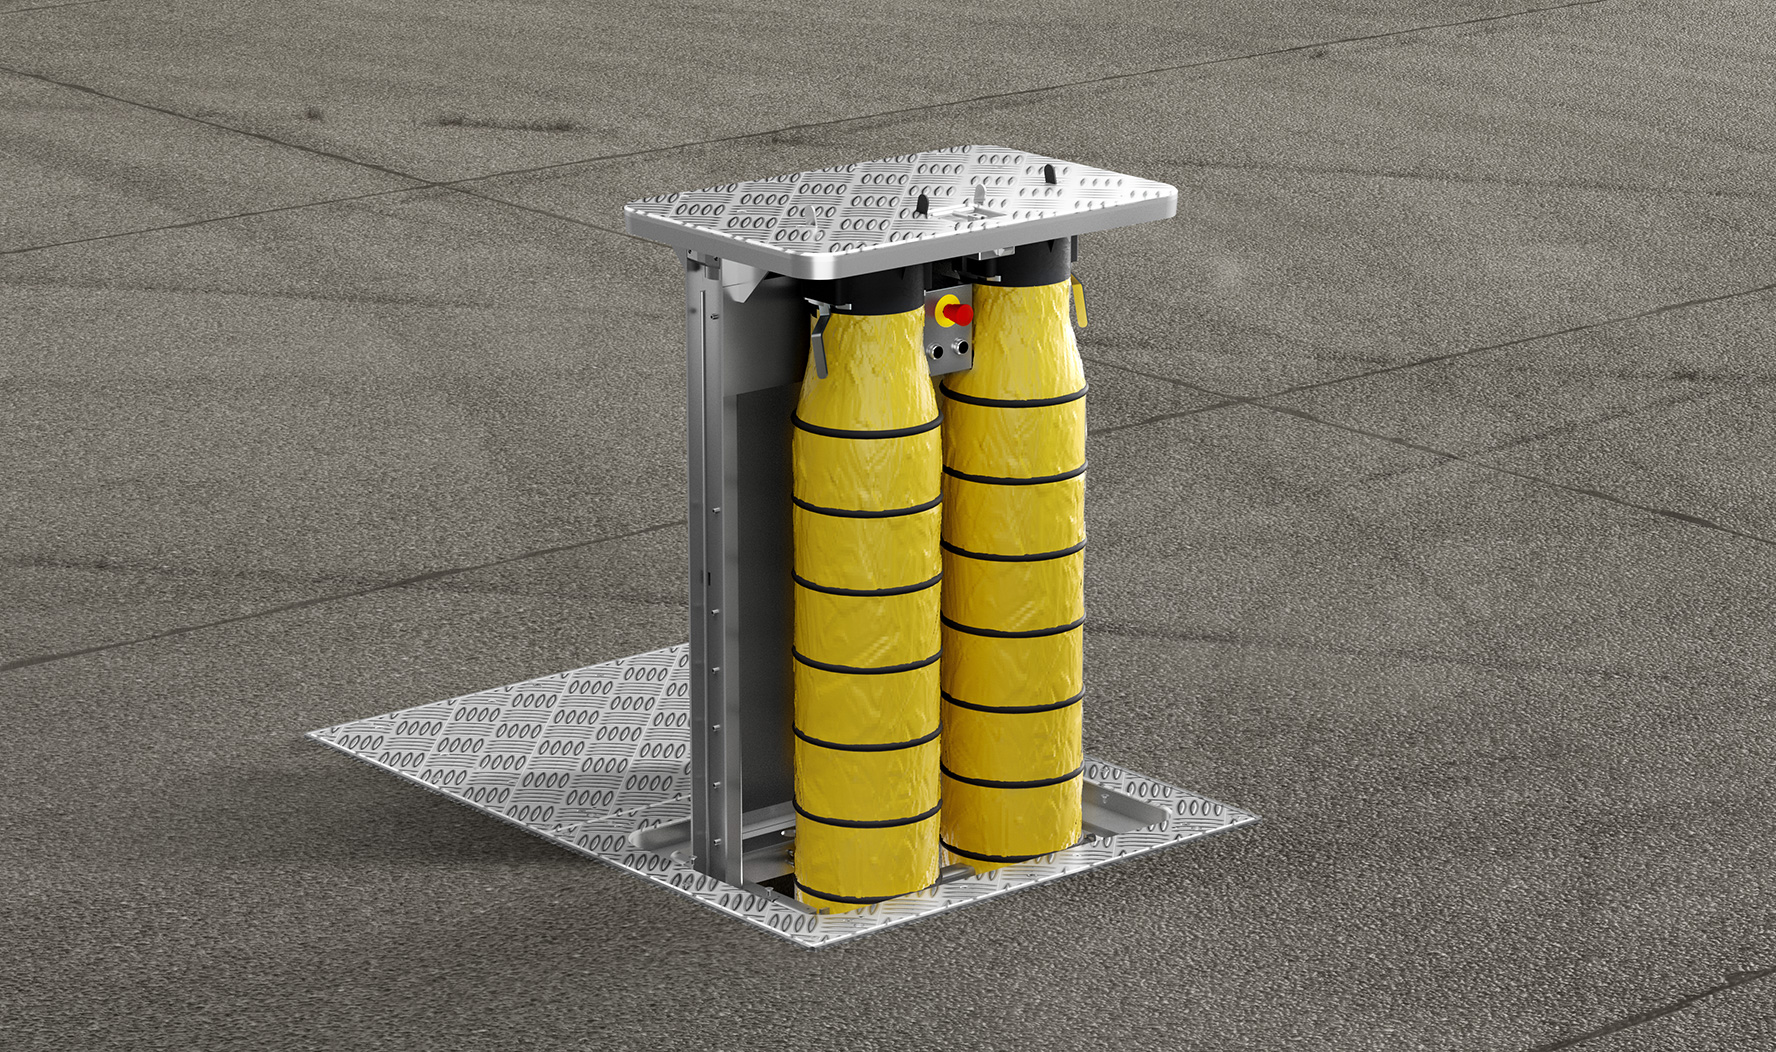 pit system, pop up pit, pca, aircondition, hoses